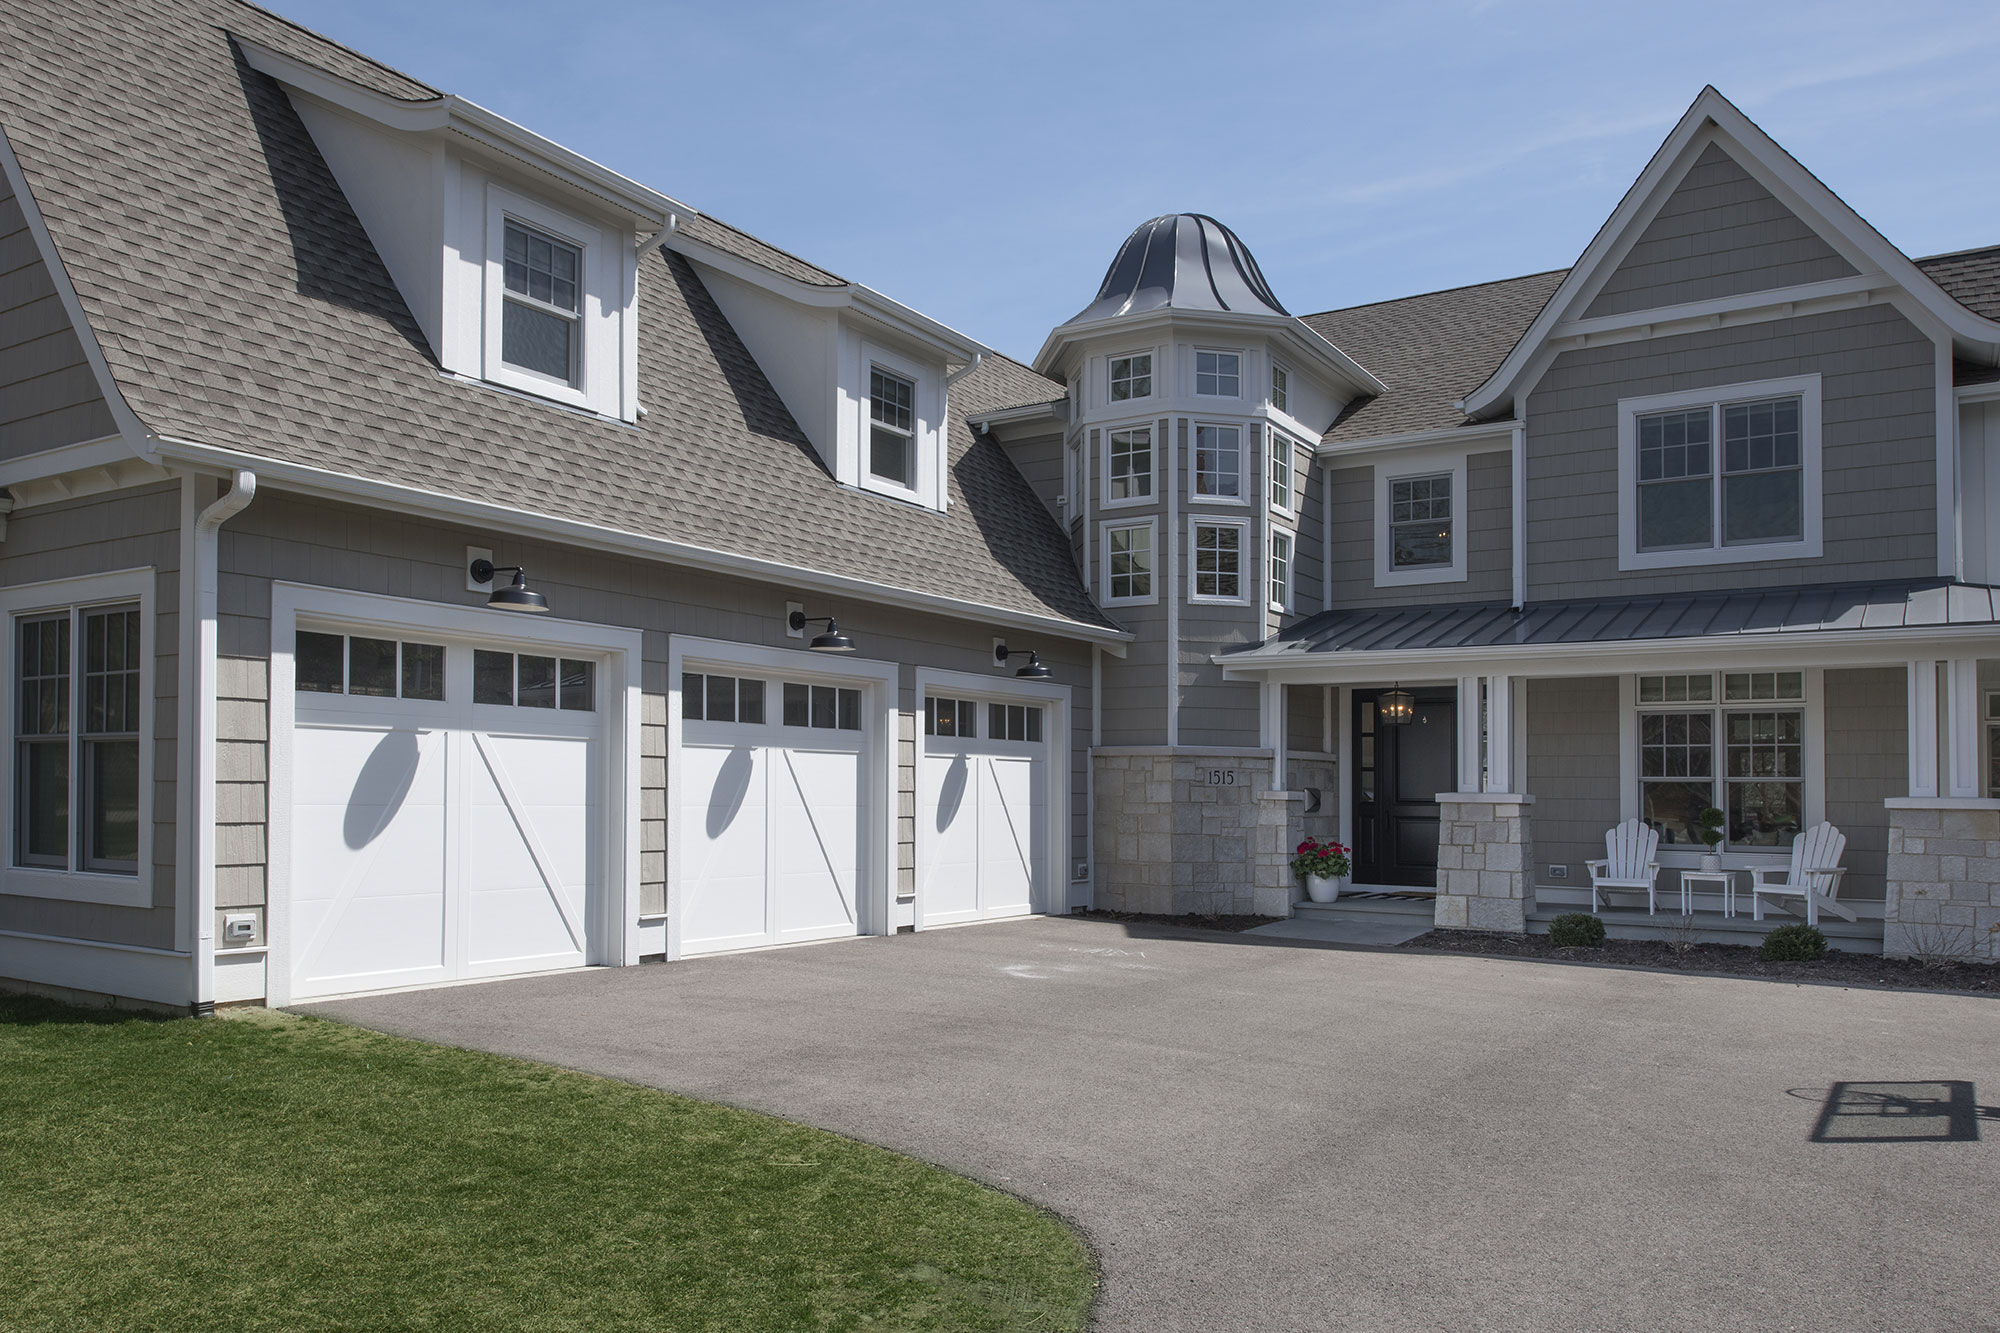 mcgrecords colors doors white home garage on com fashionable the design awesome overhead reviews for coastal exterior inspiration in inspiring handles color door clopay